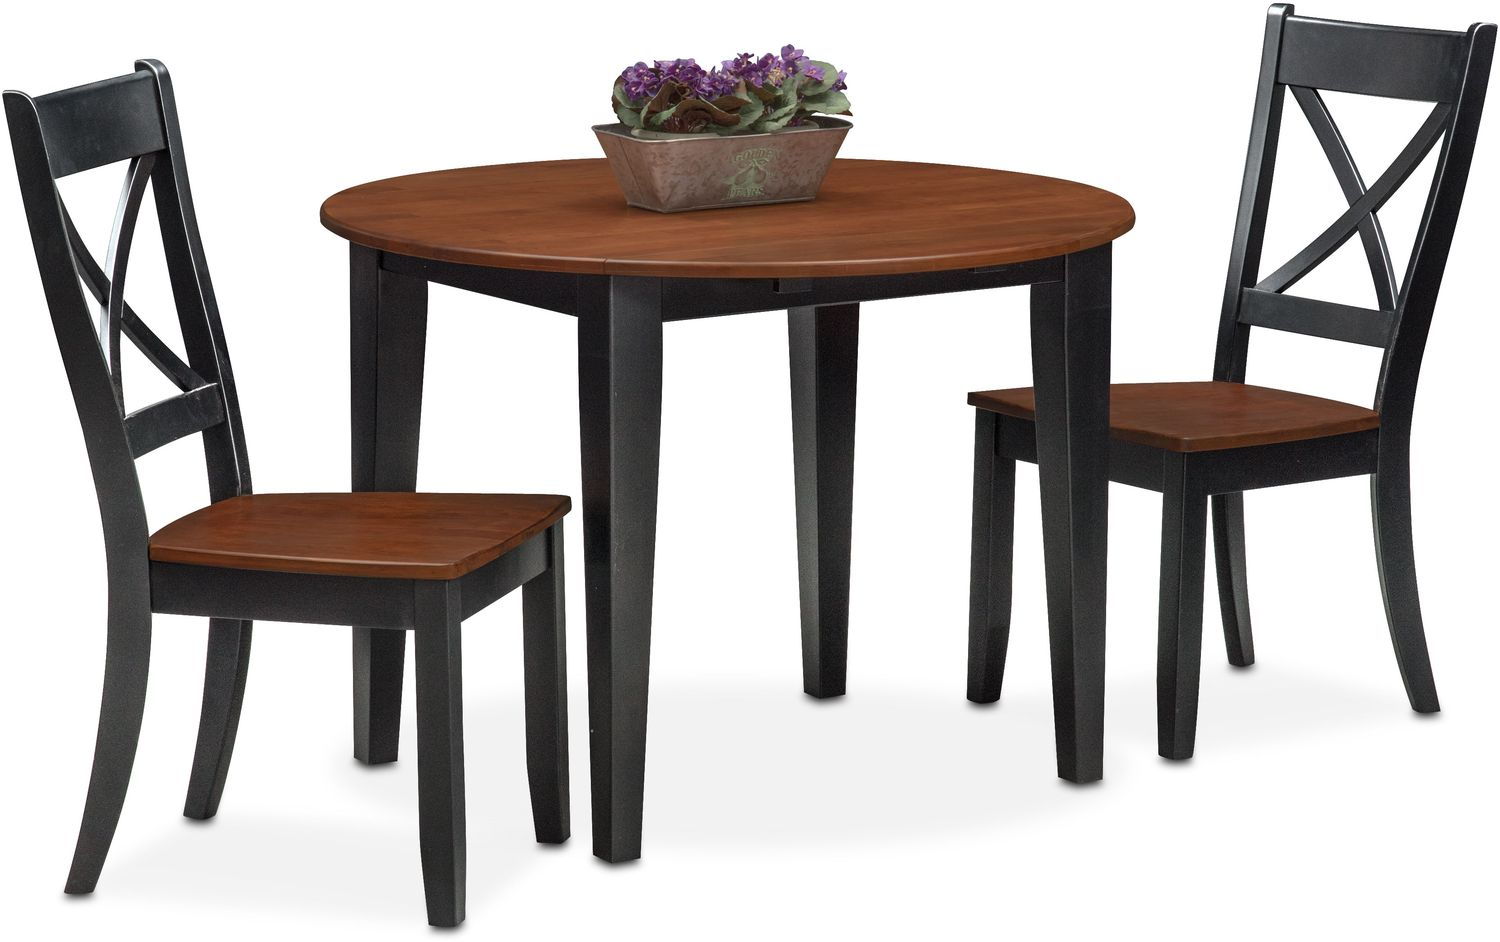 Nantucket Drop-Leaf Table and 2 Side Chairs - Black and Cherry ...